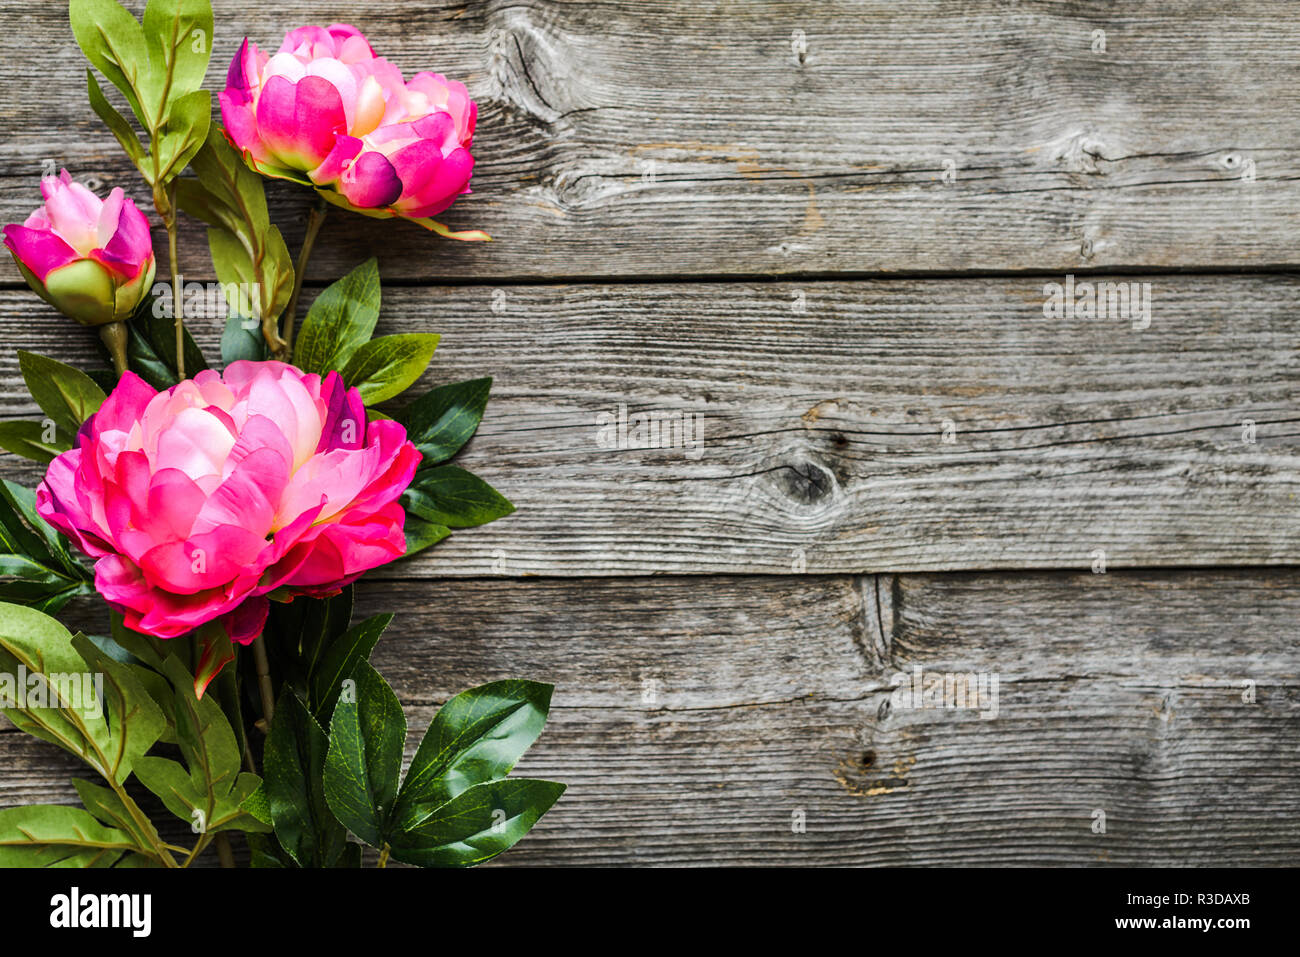 Summer flowers bouquet, background for mothers day or for womens day 8 march - Stock Image